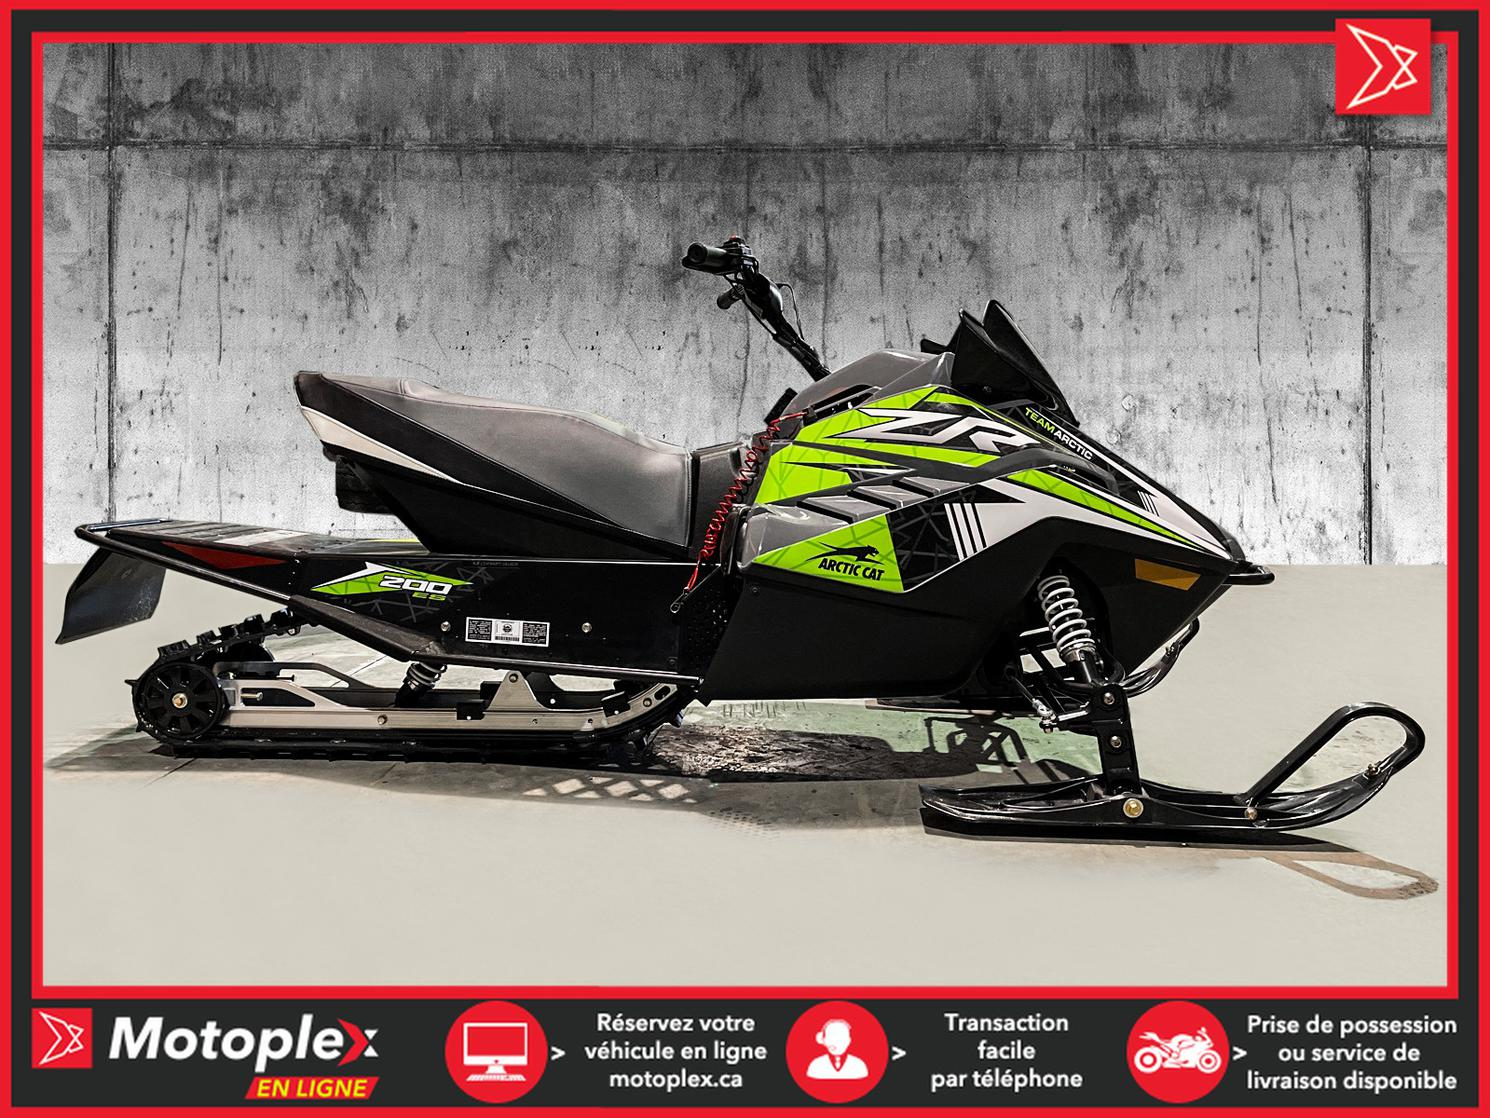 DEMOLOSIER Arctic Cat ZR200 DEMO 2021